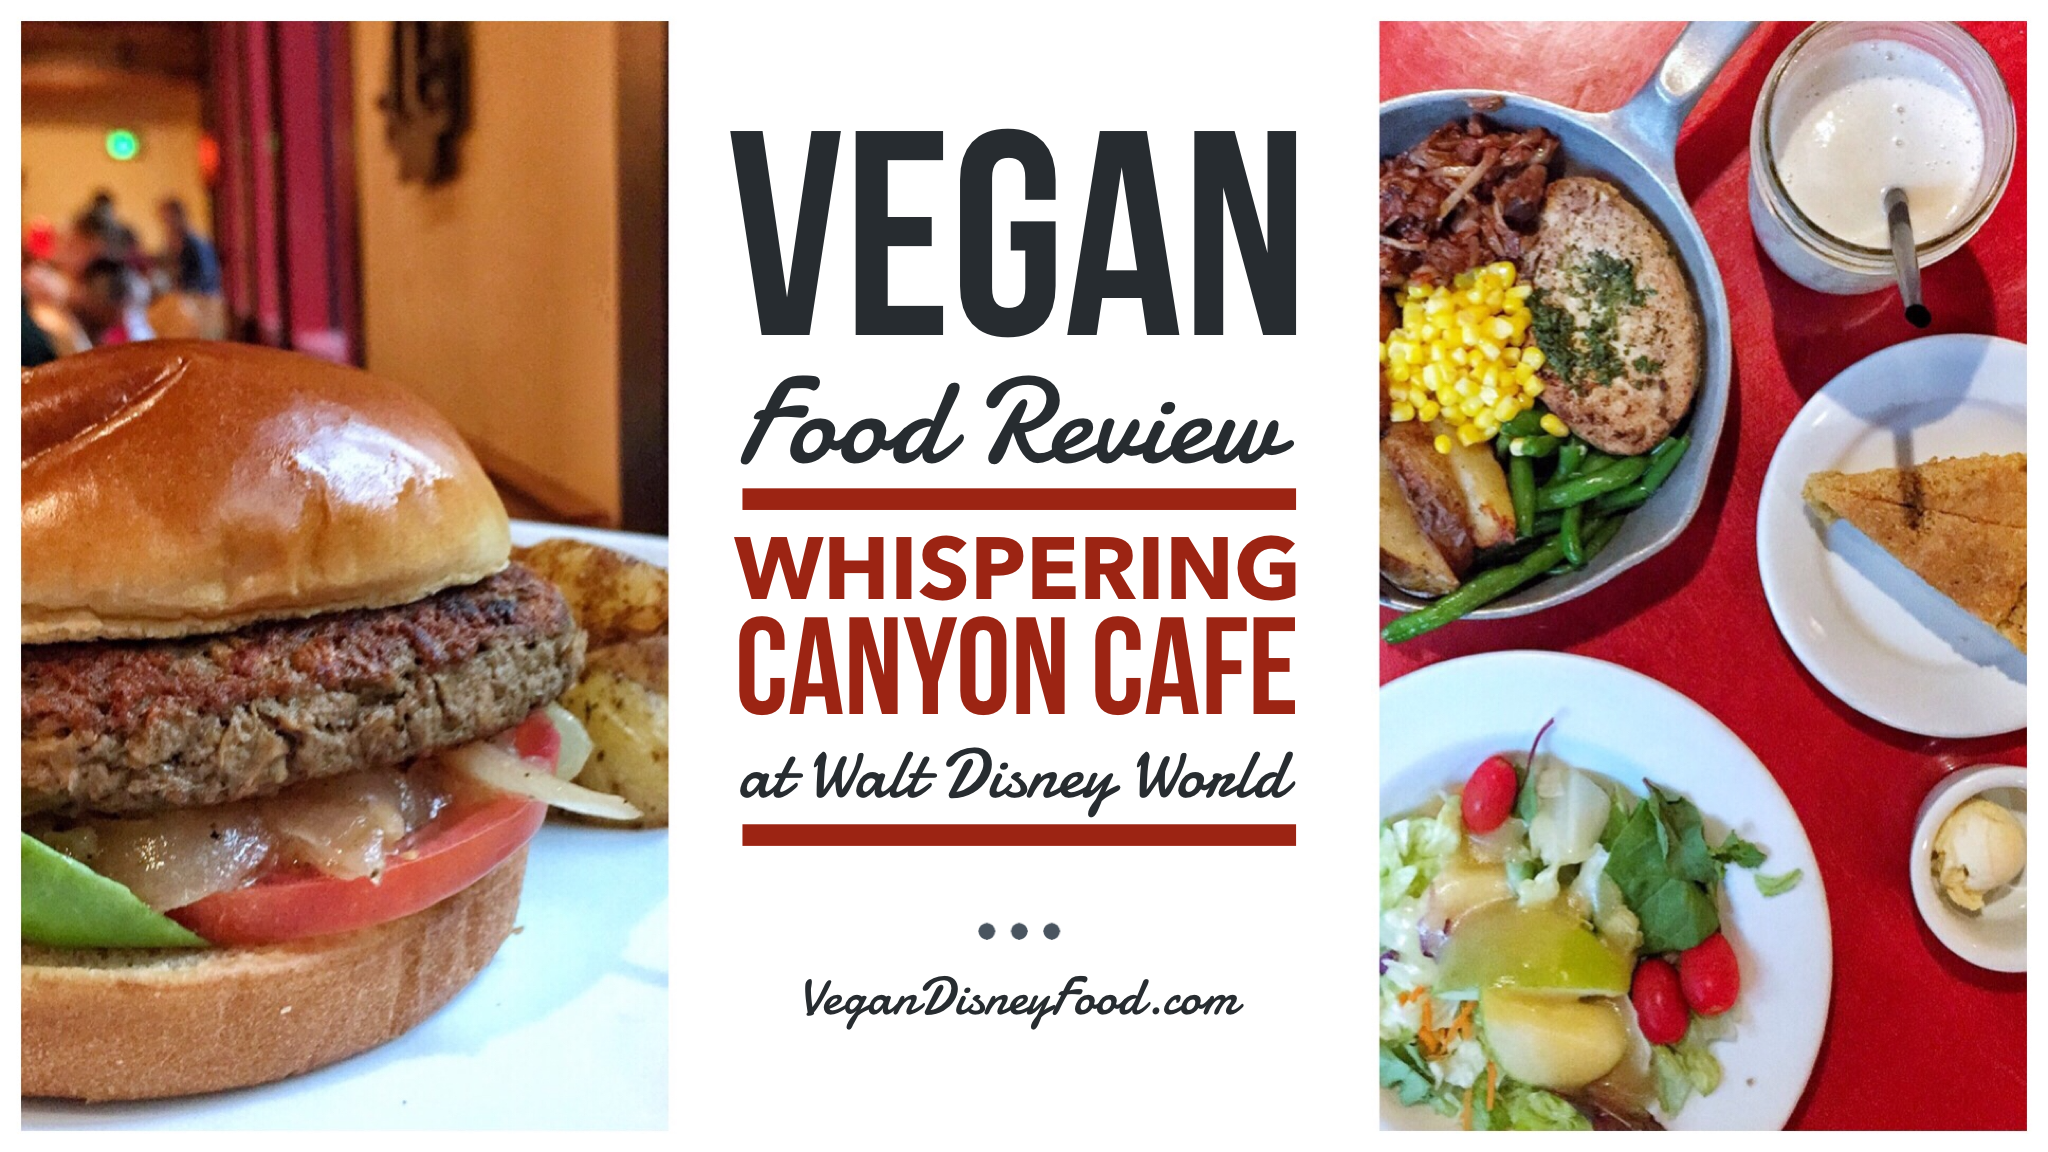 Vegan Food Review: Whispering Canyon Cafe at Walt Disney World